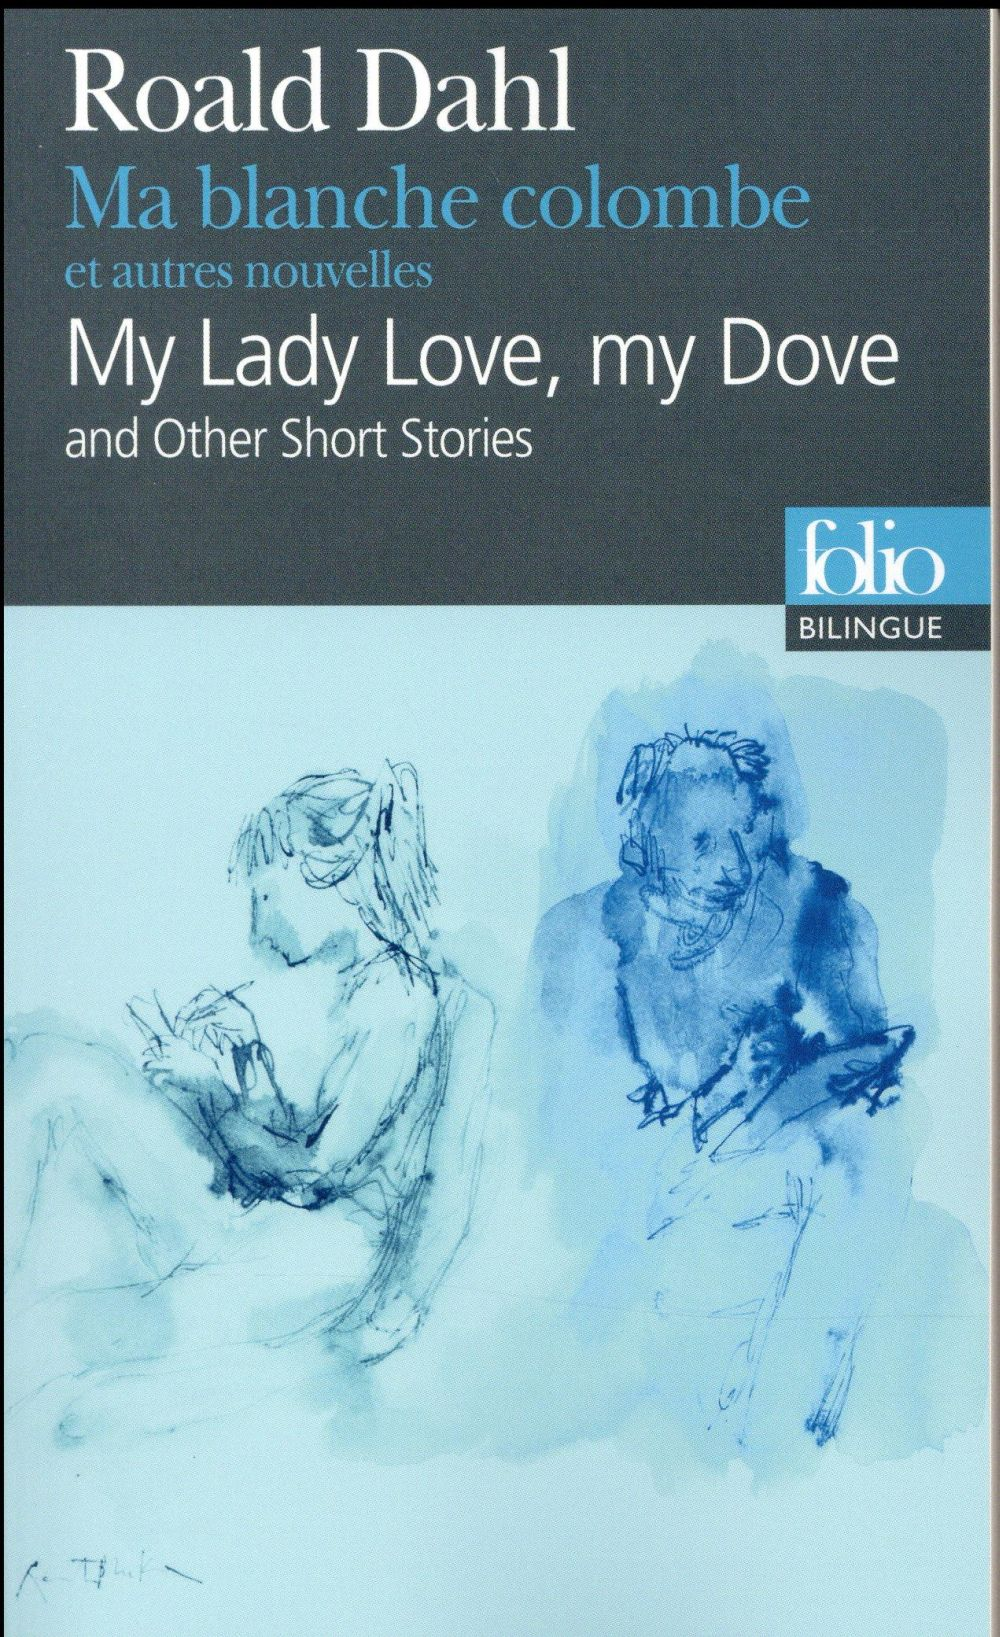 MA BLANCHE COLOMBE ET AUTRES NOUVELLESMY LADY LOVE, MY DOVE AND OTHER SHORT STORIES